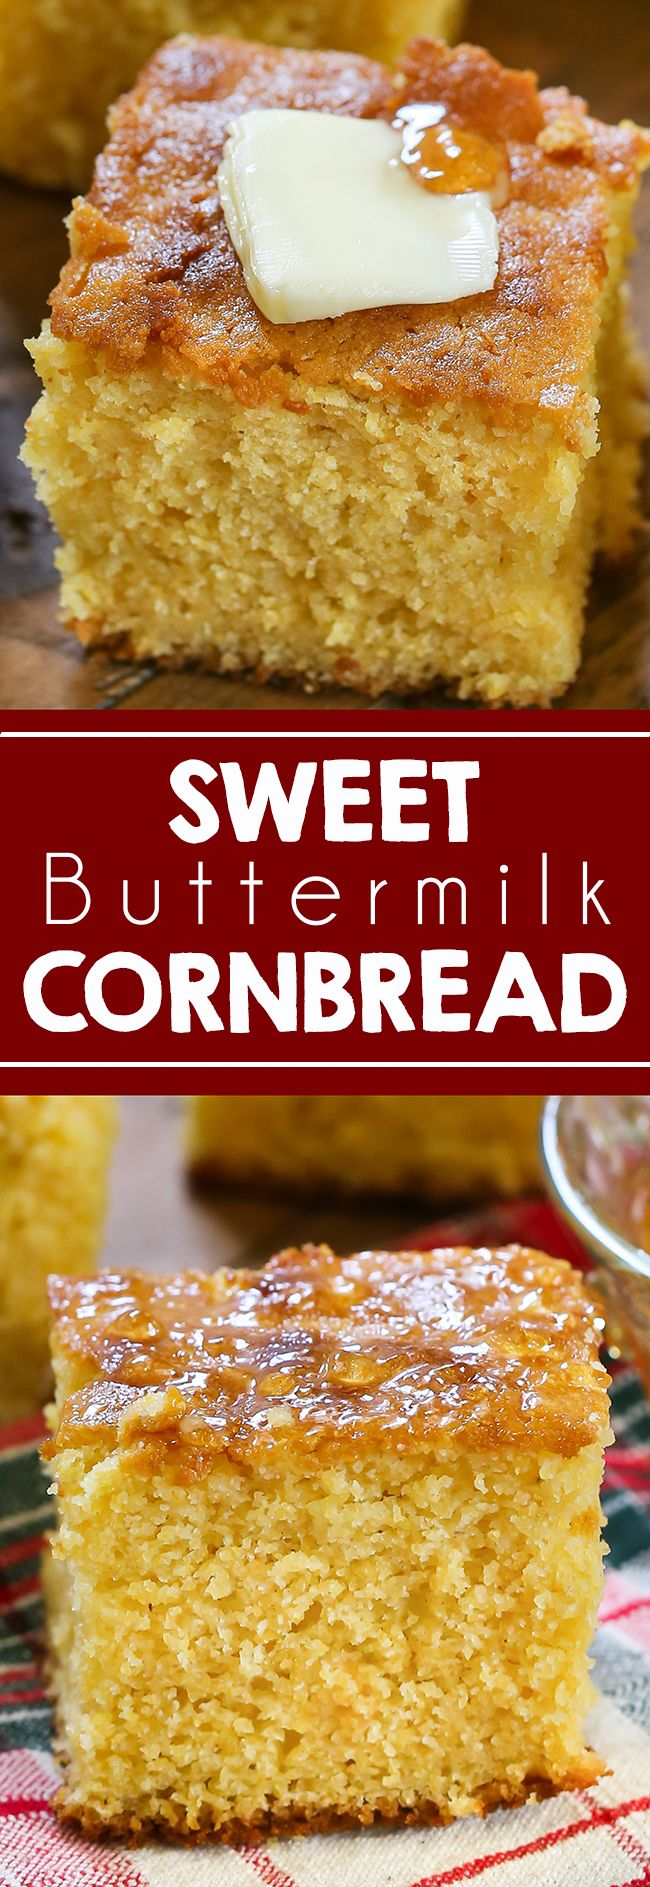 This Sweet Buttermilk Cornbread is truly a southern staple that is great all winter and fall long! Serve for the holidays or with any winter dish. #cornbread #food #thanksgiving